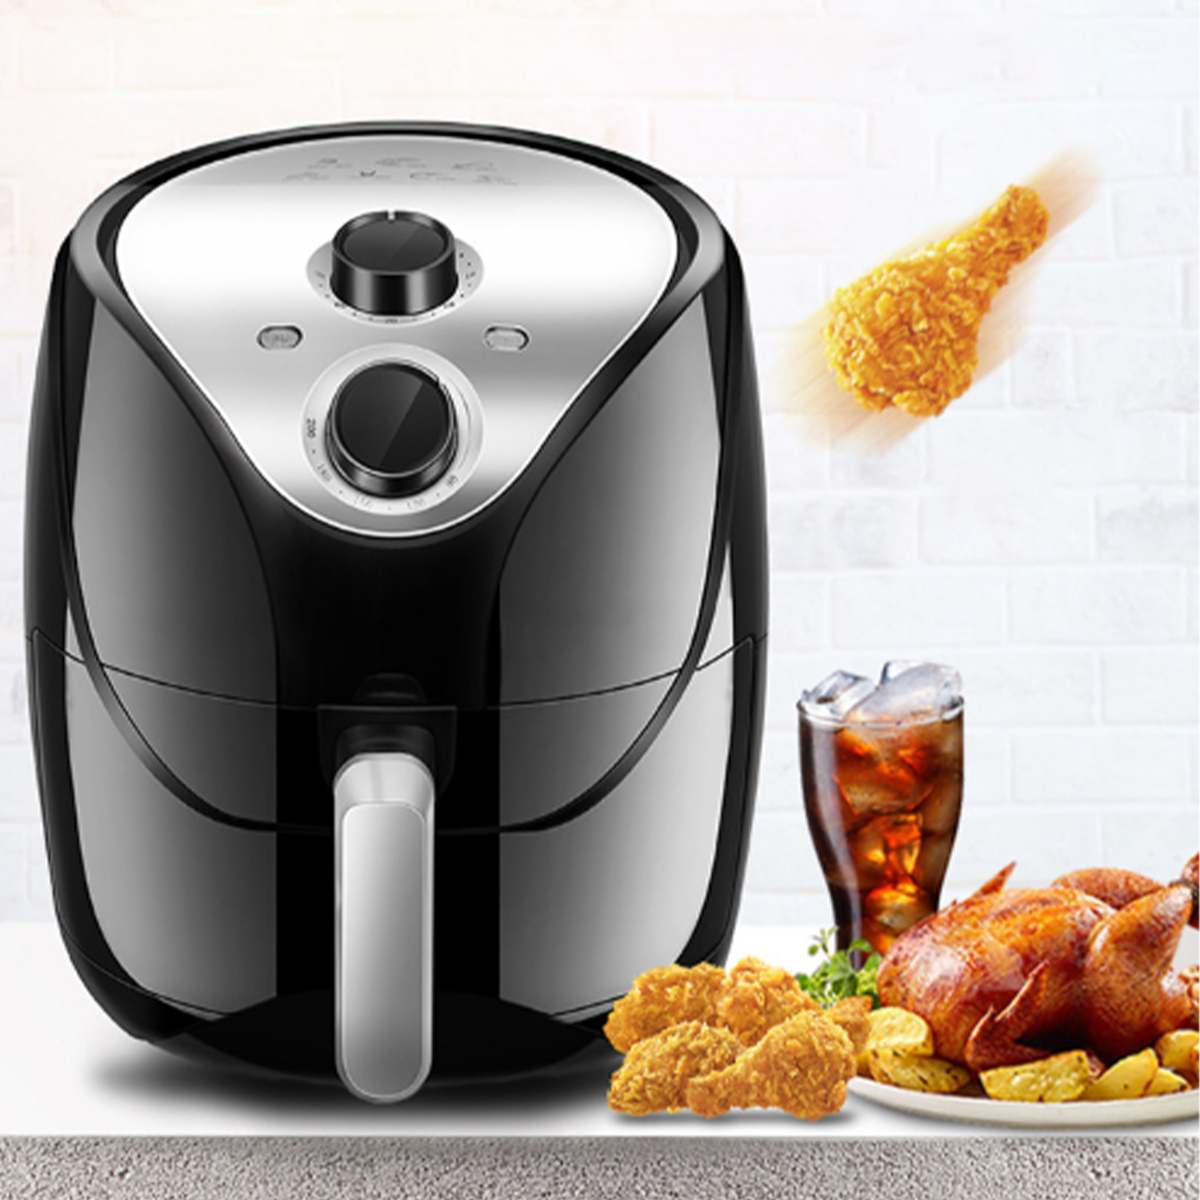 5.5L Multi-function Air Fryer 1500W Electric Deep Fryer High-speed Hot Air Circulation Cooker Oven Low Fat Health Pan AU Plug